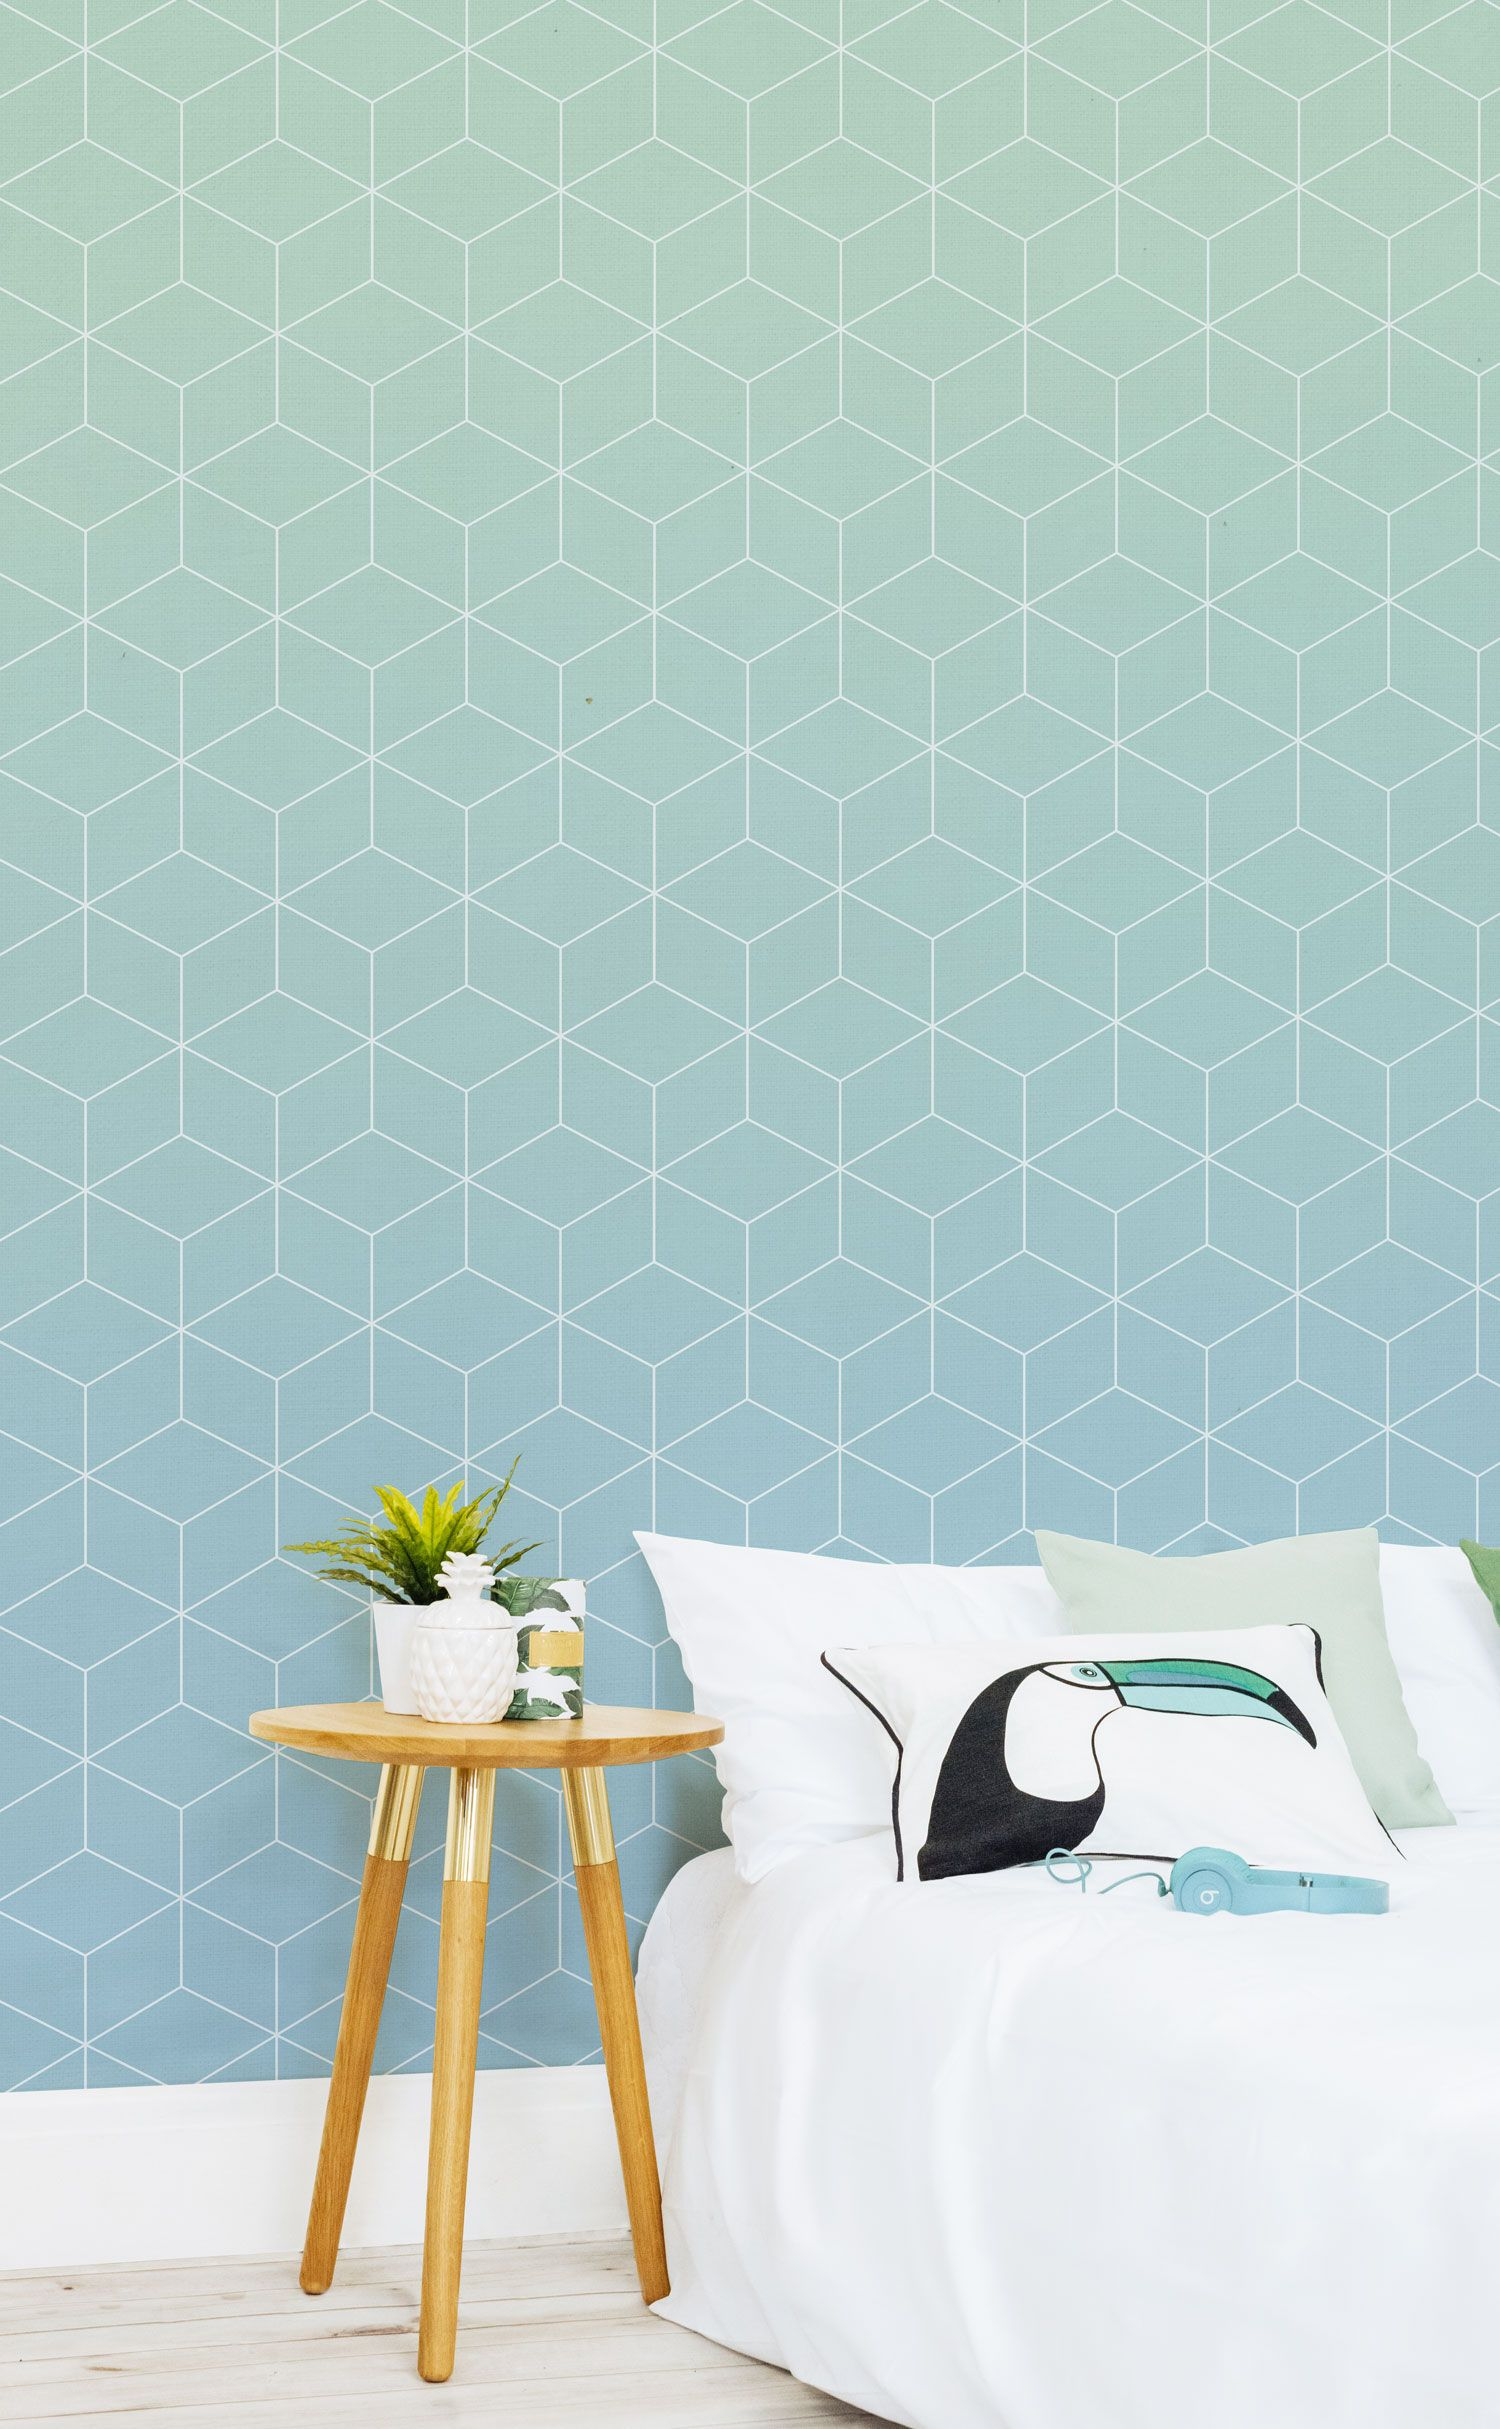 Aquamarine Patterned Ombre Wall Mural Wallpaper bedroom